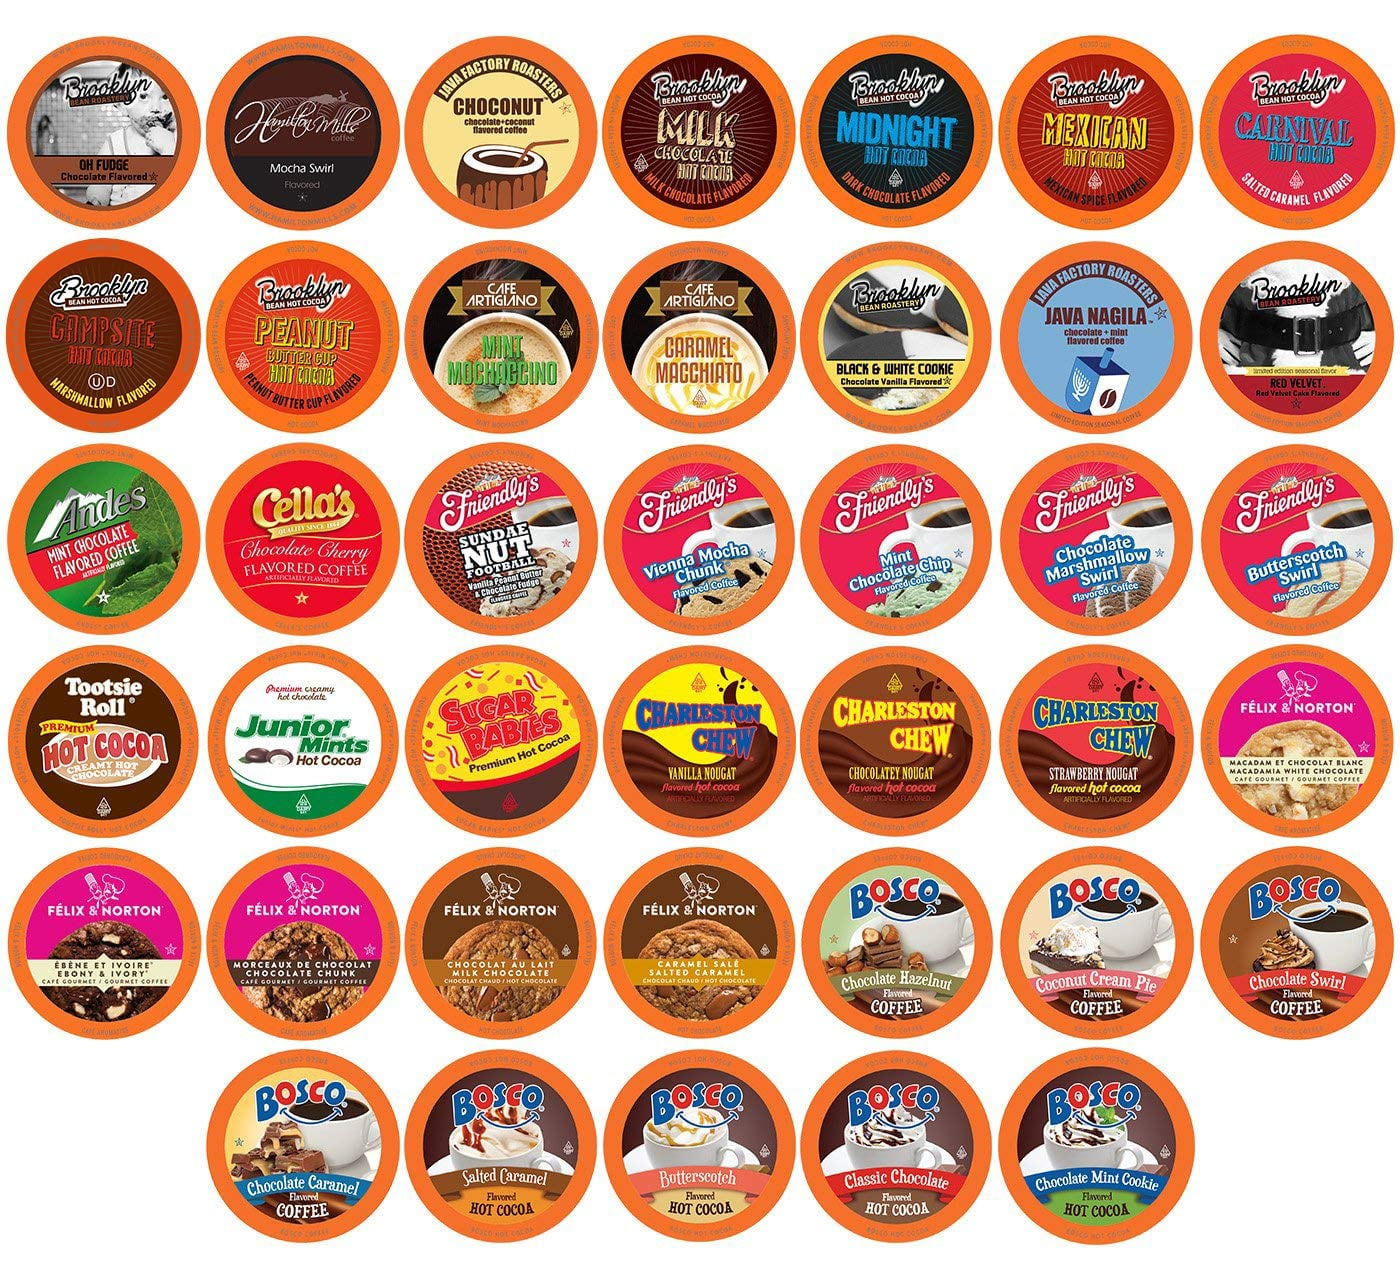 40-Count Two Rivers Coffee Hot Chocolate and Coffee K-Cup Pods (Chocoholic Assorted Variety Pack) $10.75 + Free S&H w/ Prime or orders $25+ ~ Amazon